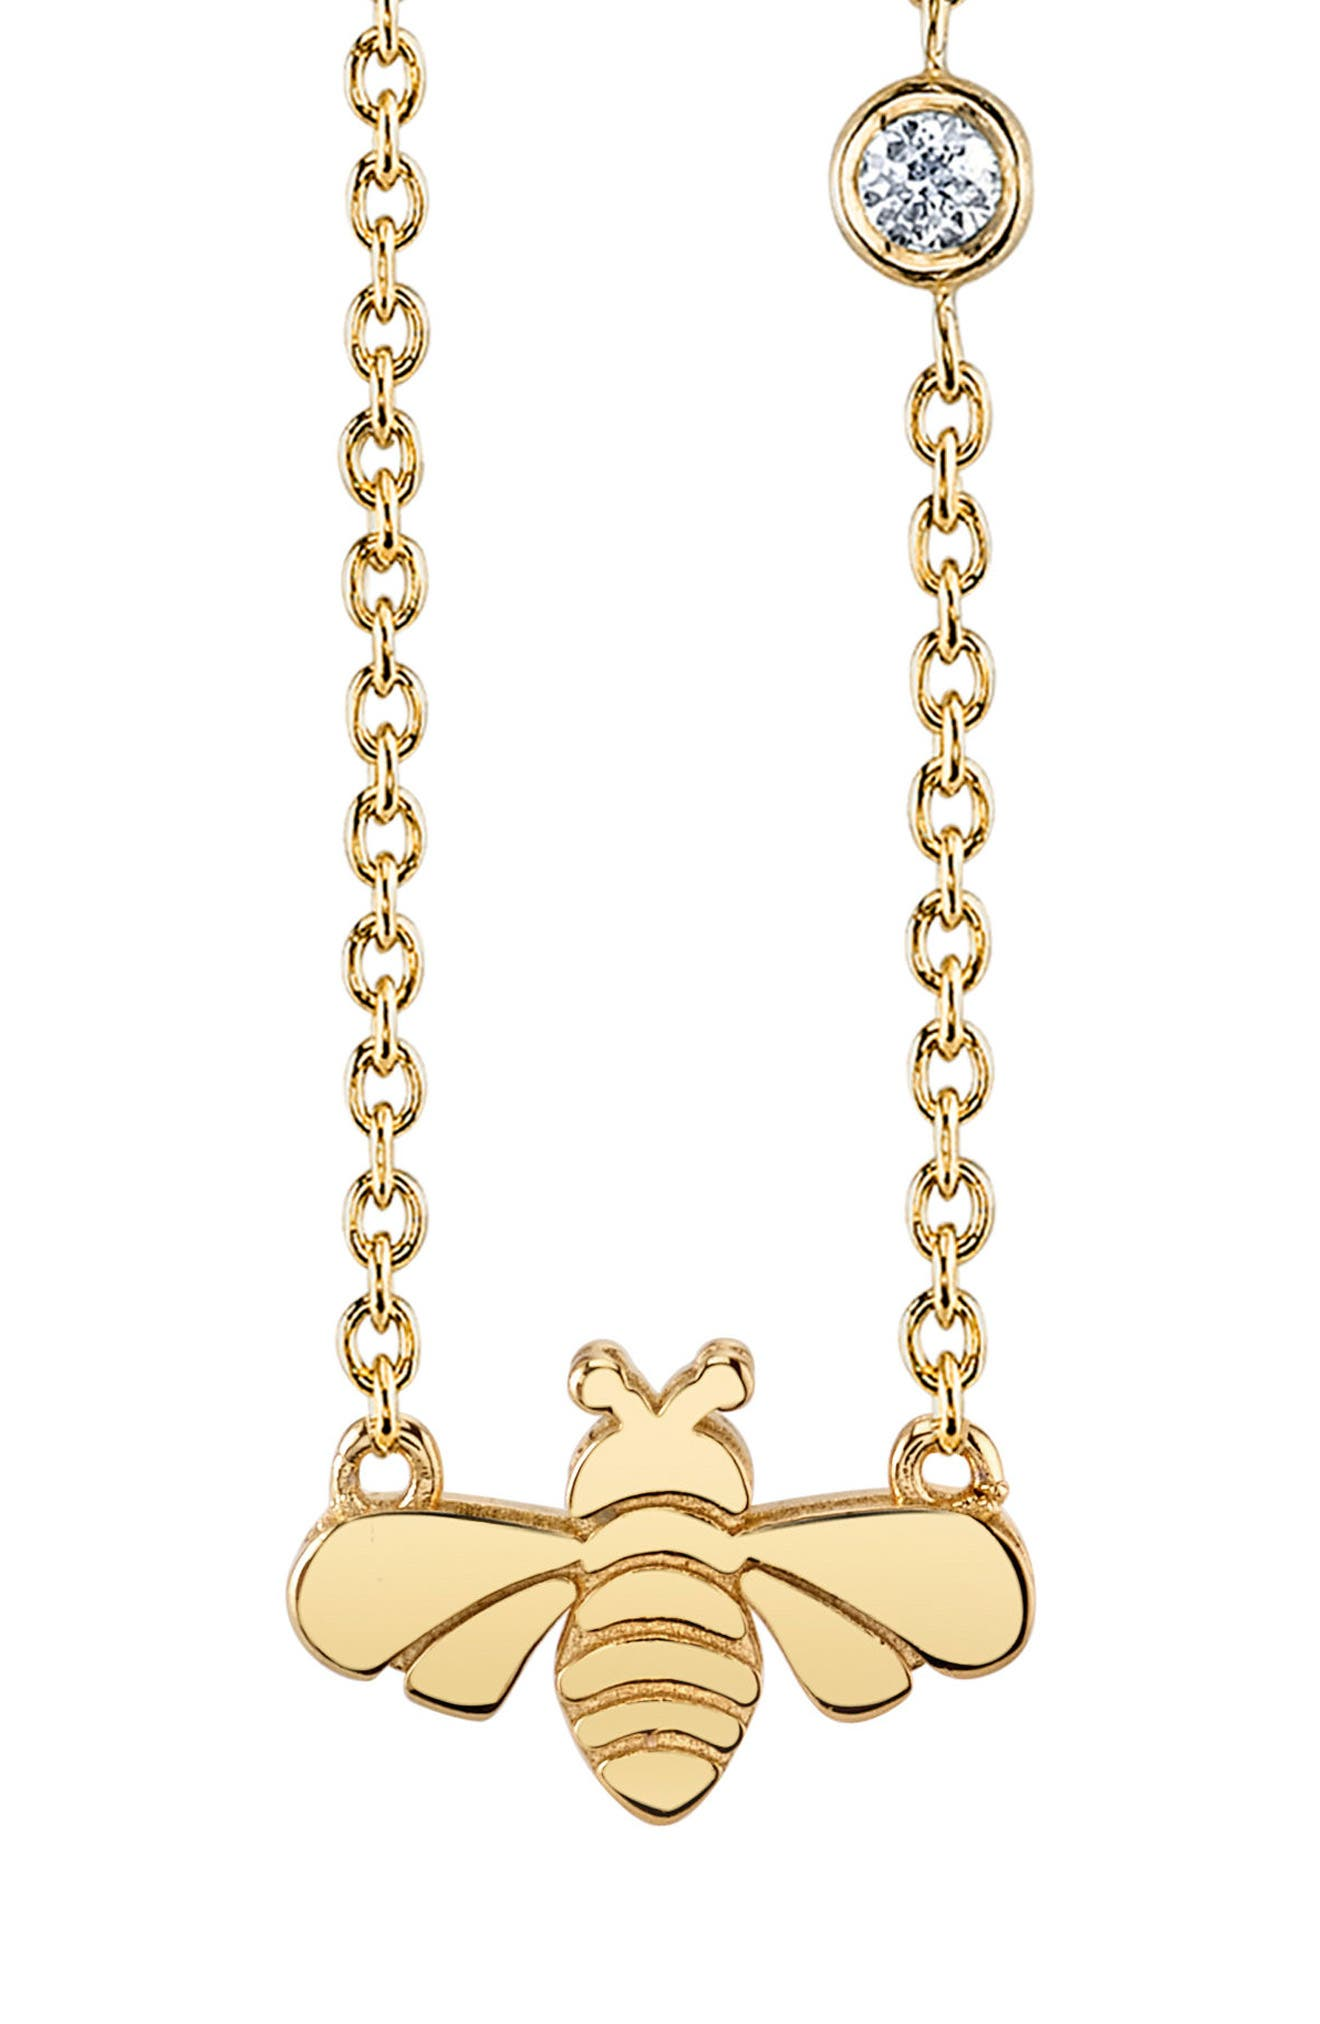 SHY BY SE BEE PENDANT NECKLACE